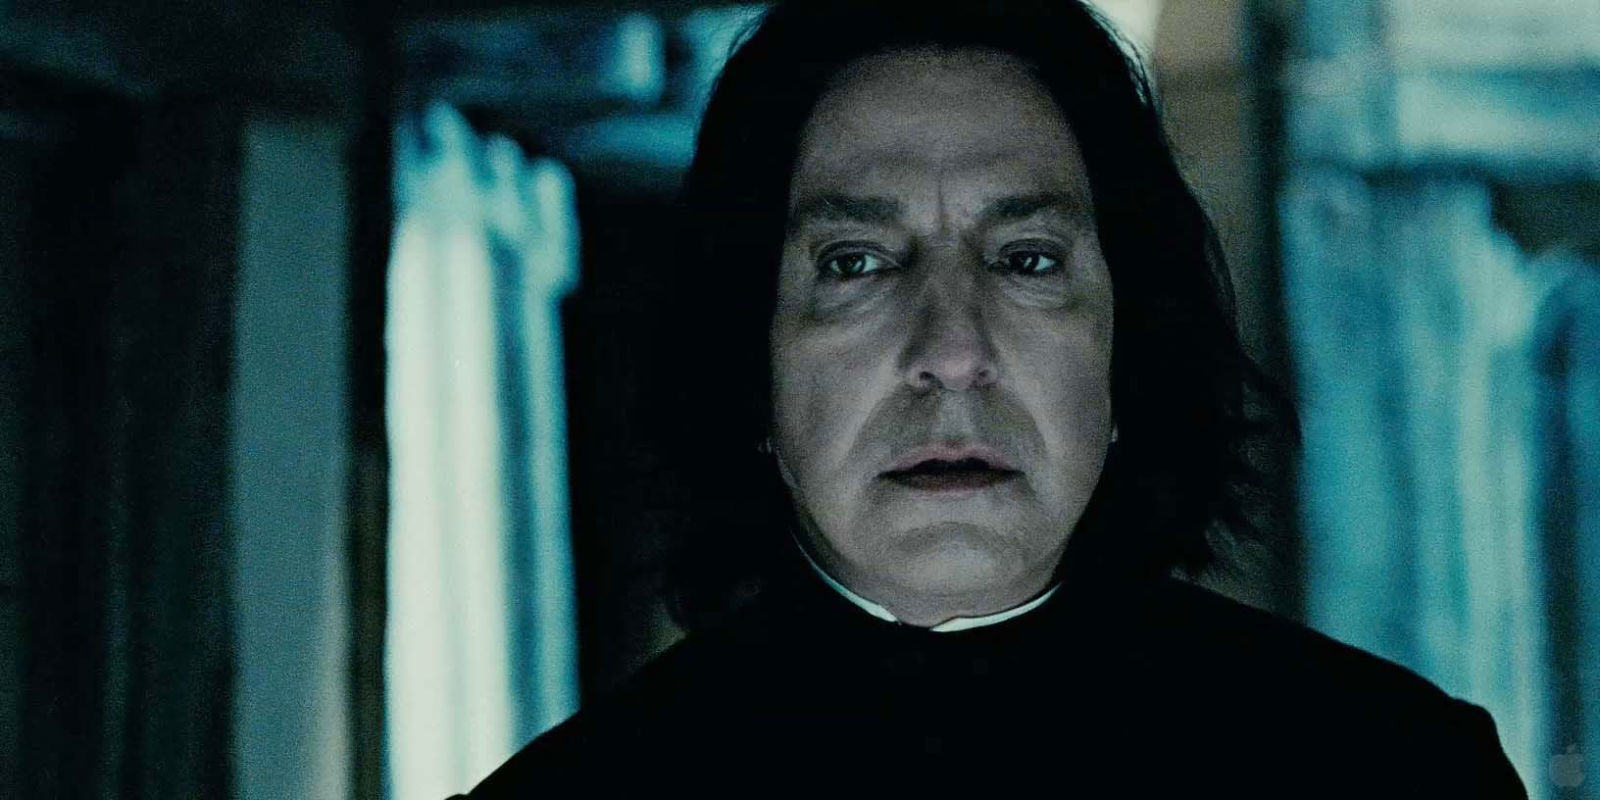 landscape nrm 1423653714 severus snape video chronological The Many Faces Of Late British Actor Alan Rickman